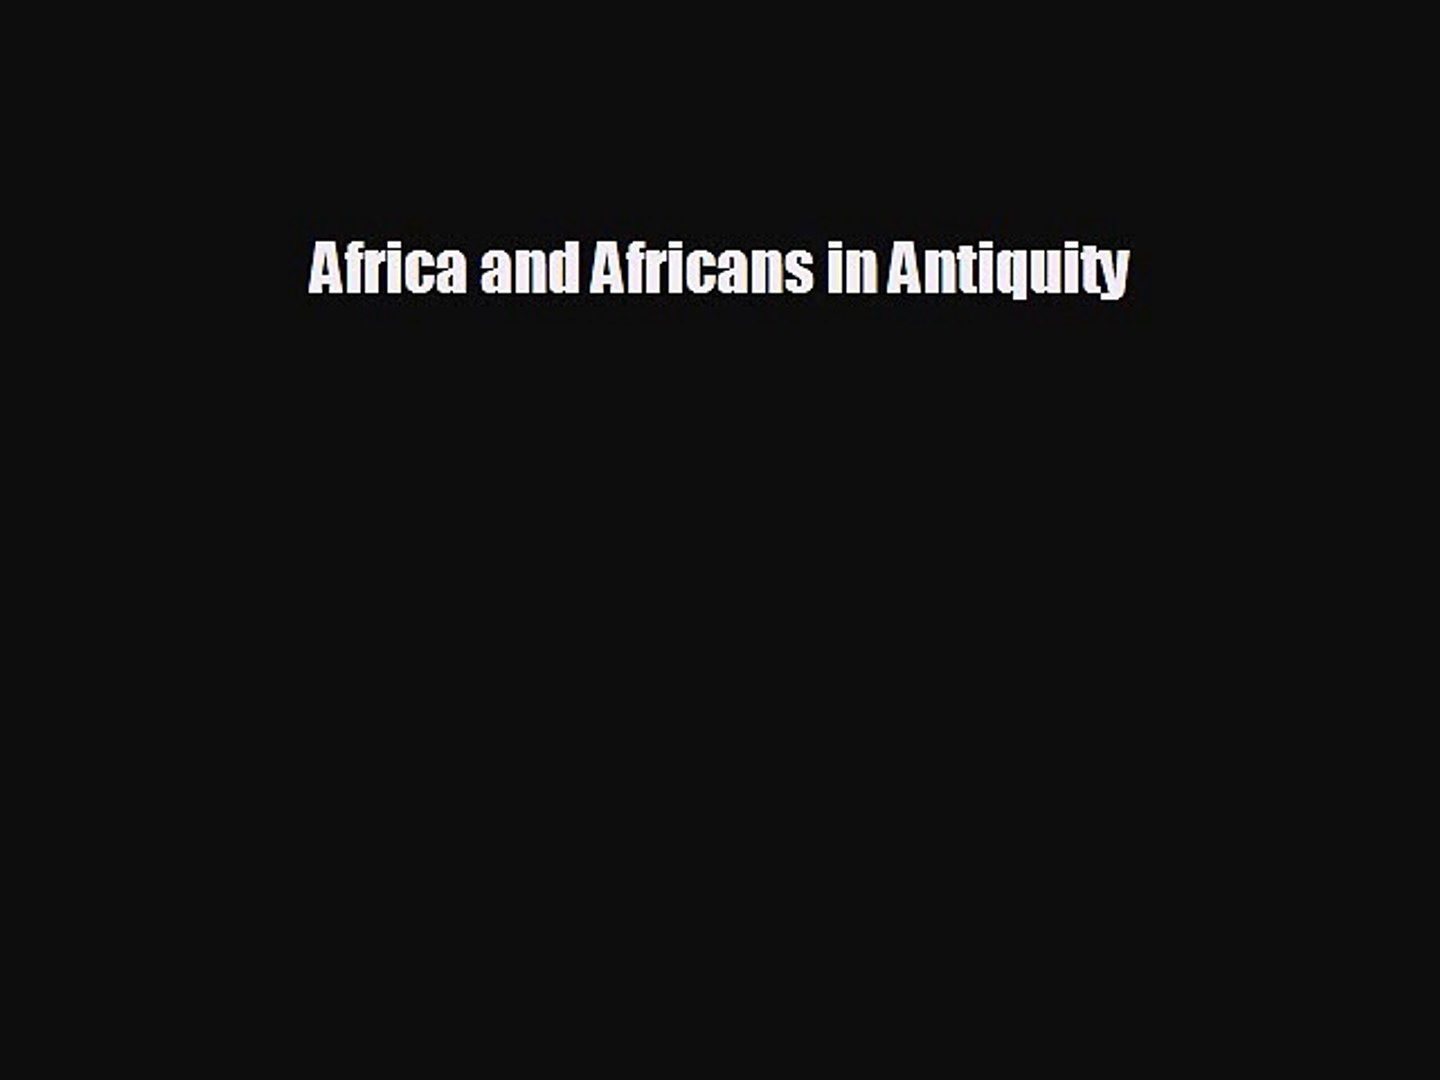 behold Africa and Africans in Antiquity